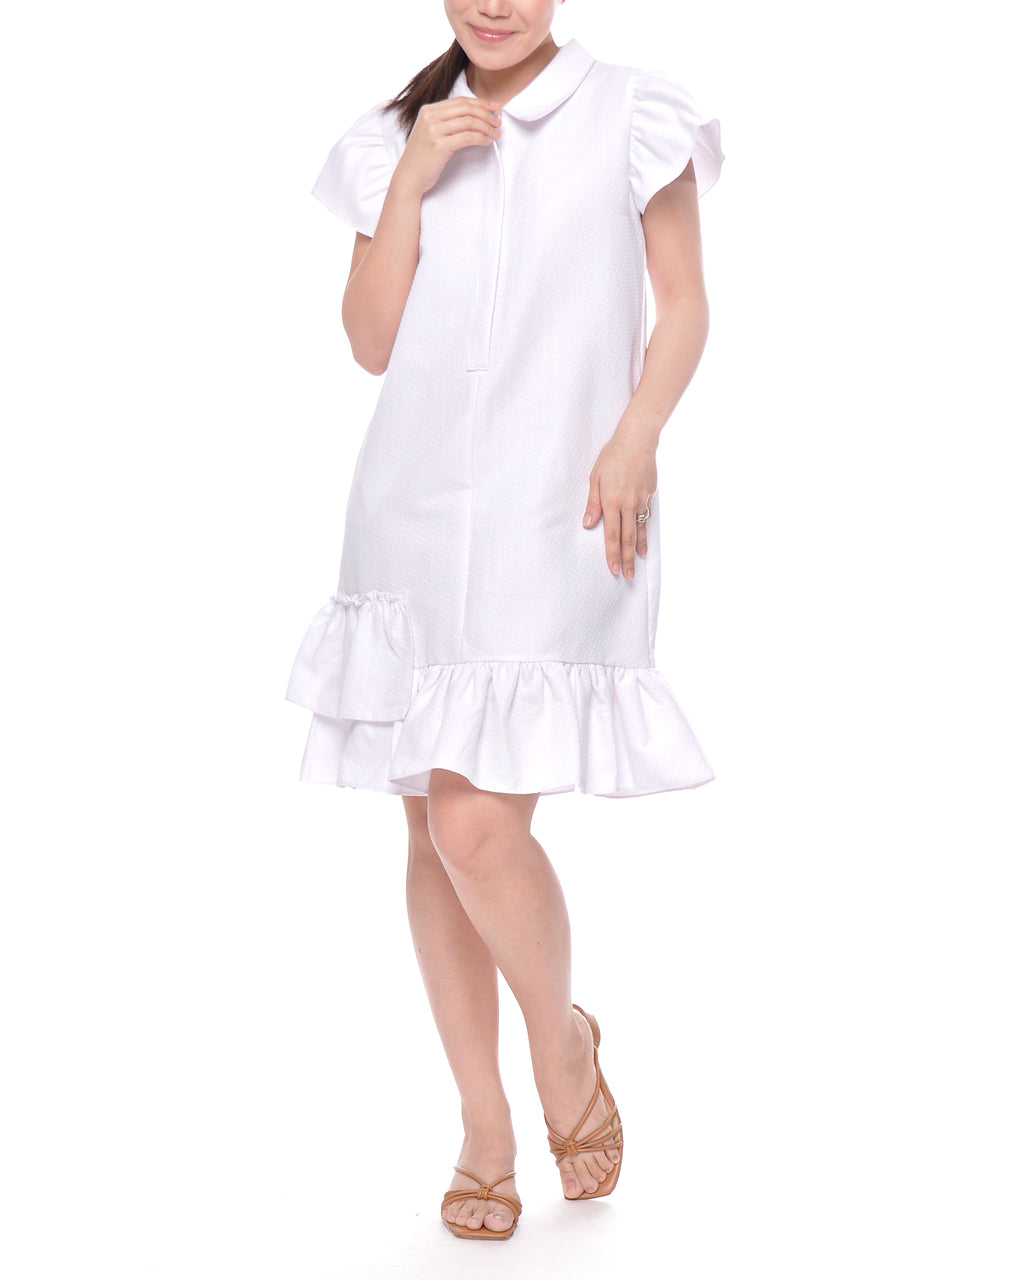 Carolina Nursing Dress